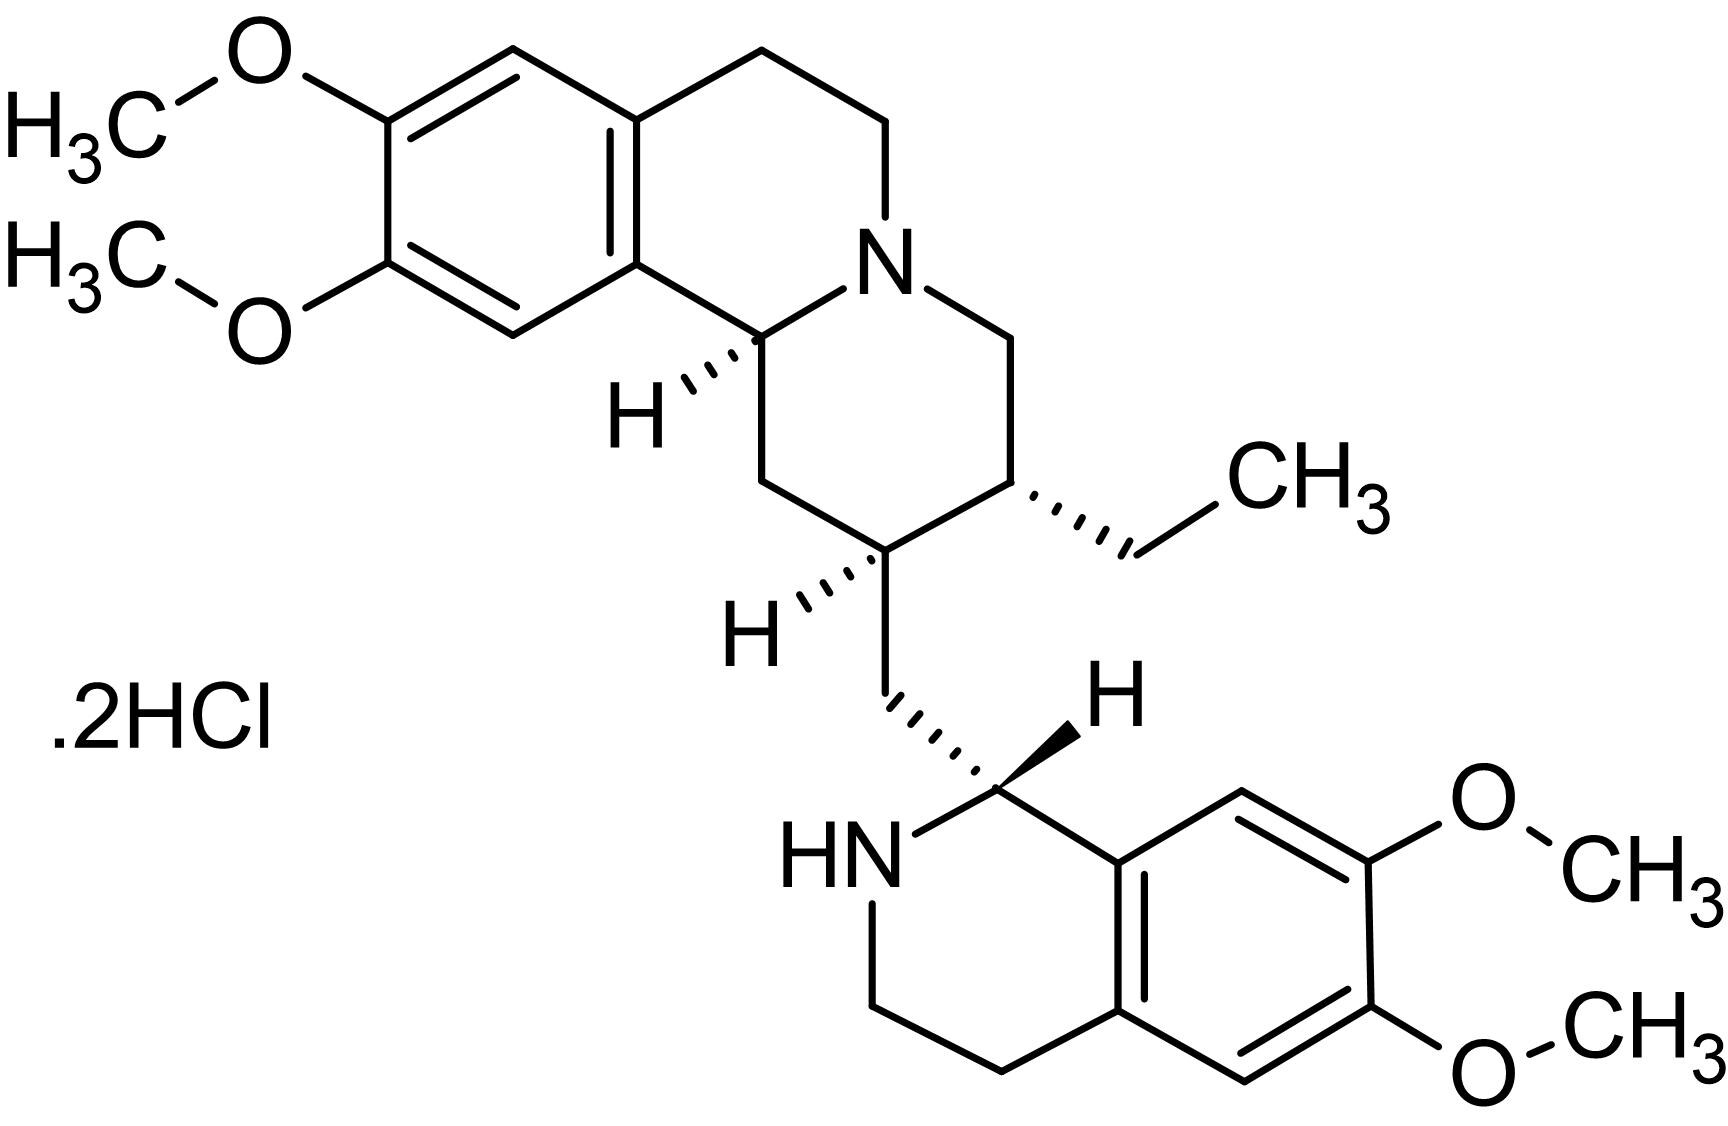 Chemical Structure - Emetine dihydrochloride, Protein synthesis inhibitor (ab141478)